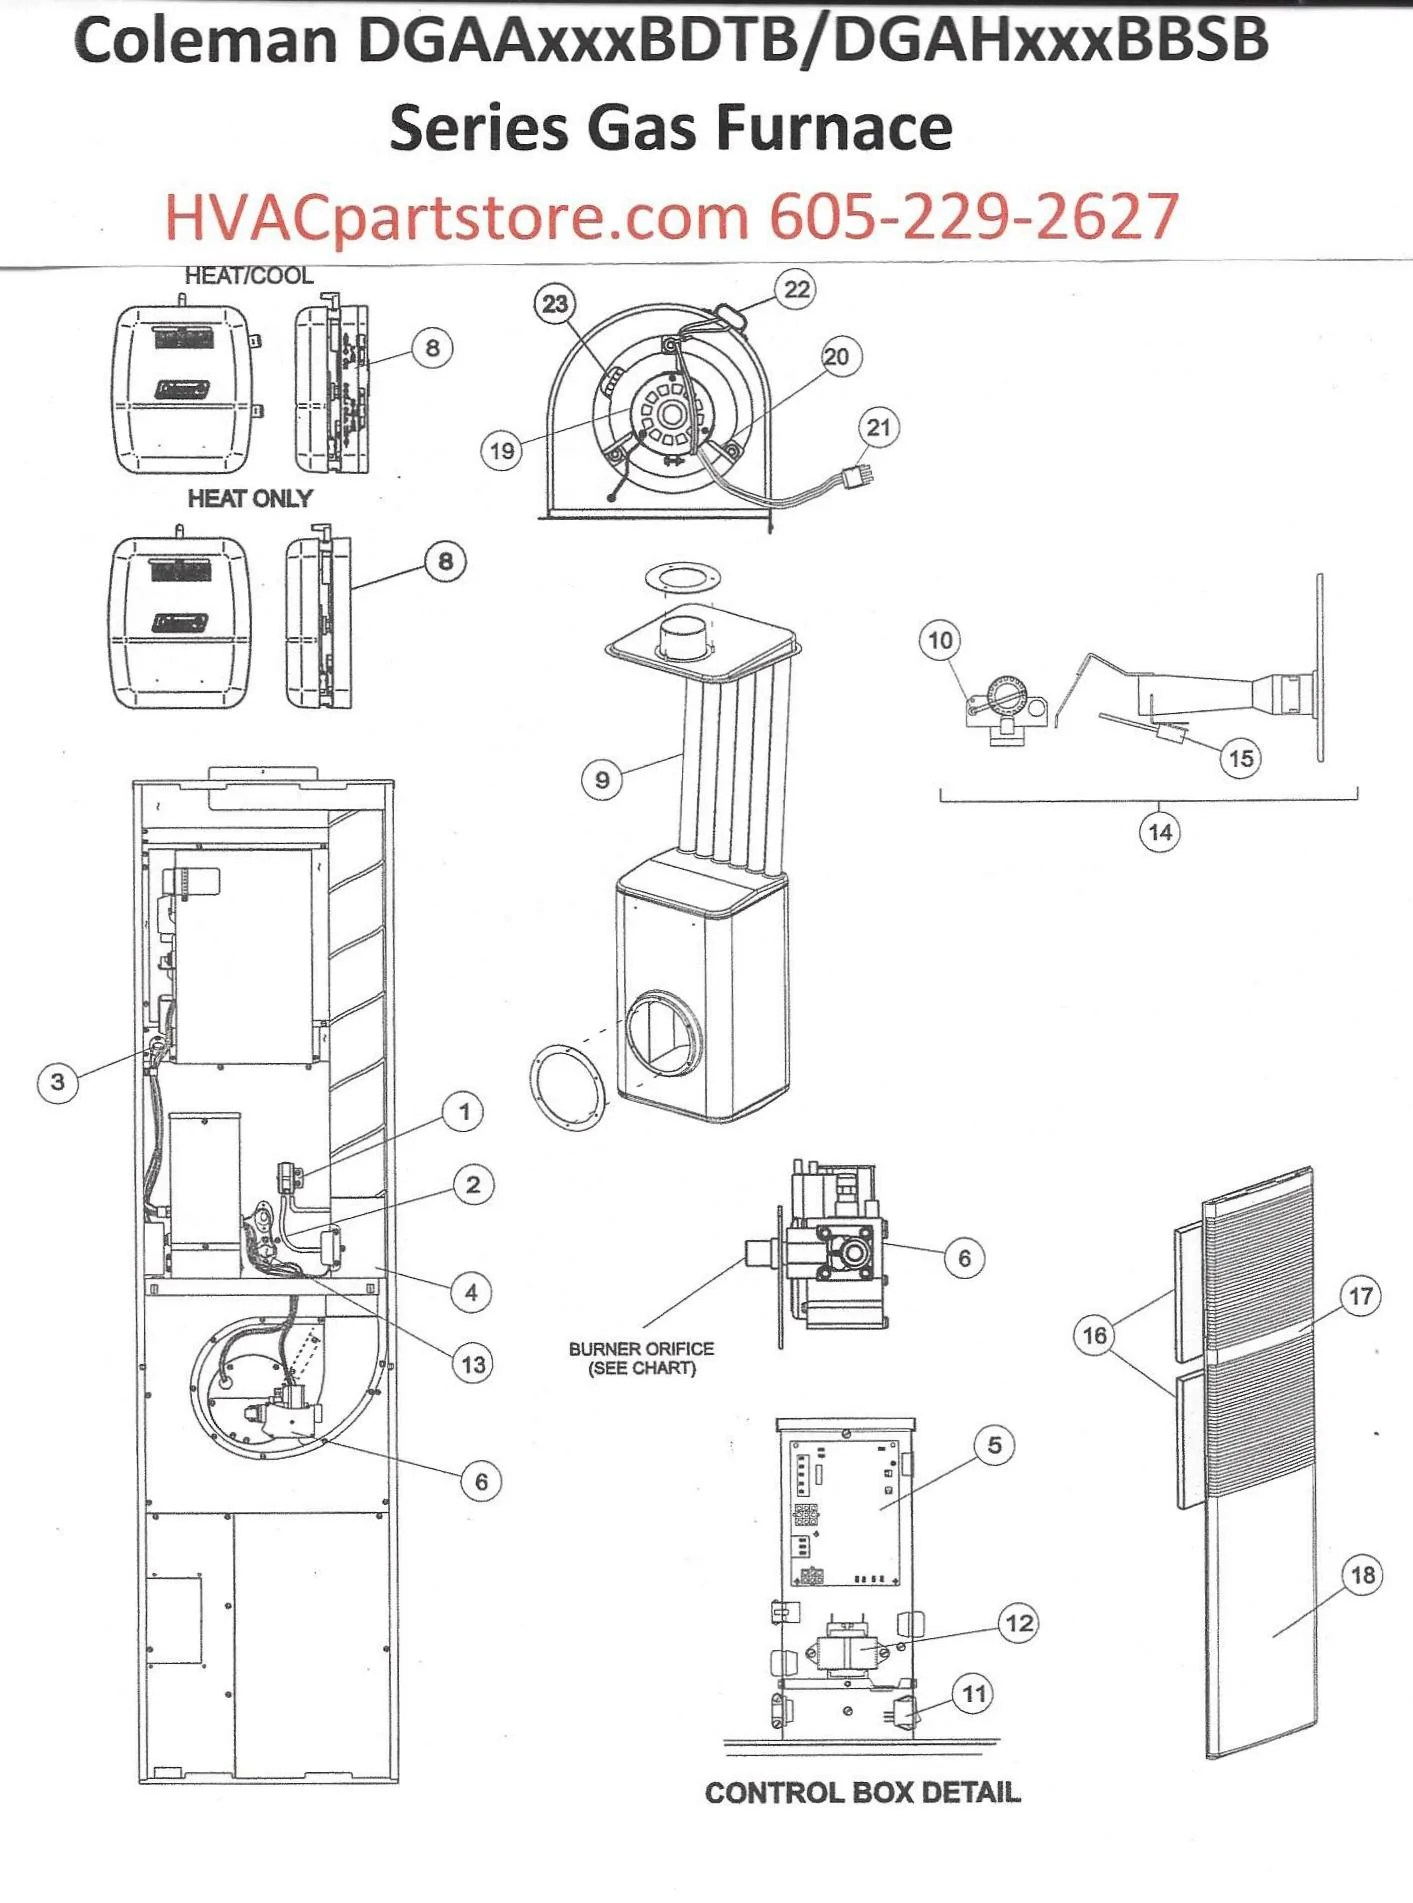 rheem gas furnace parts diagram electric scooter motor controller wiring dgah056bbsb coleman  tagged quotanalog